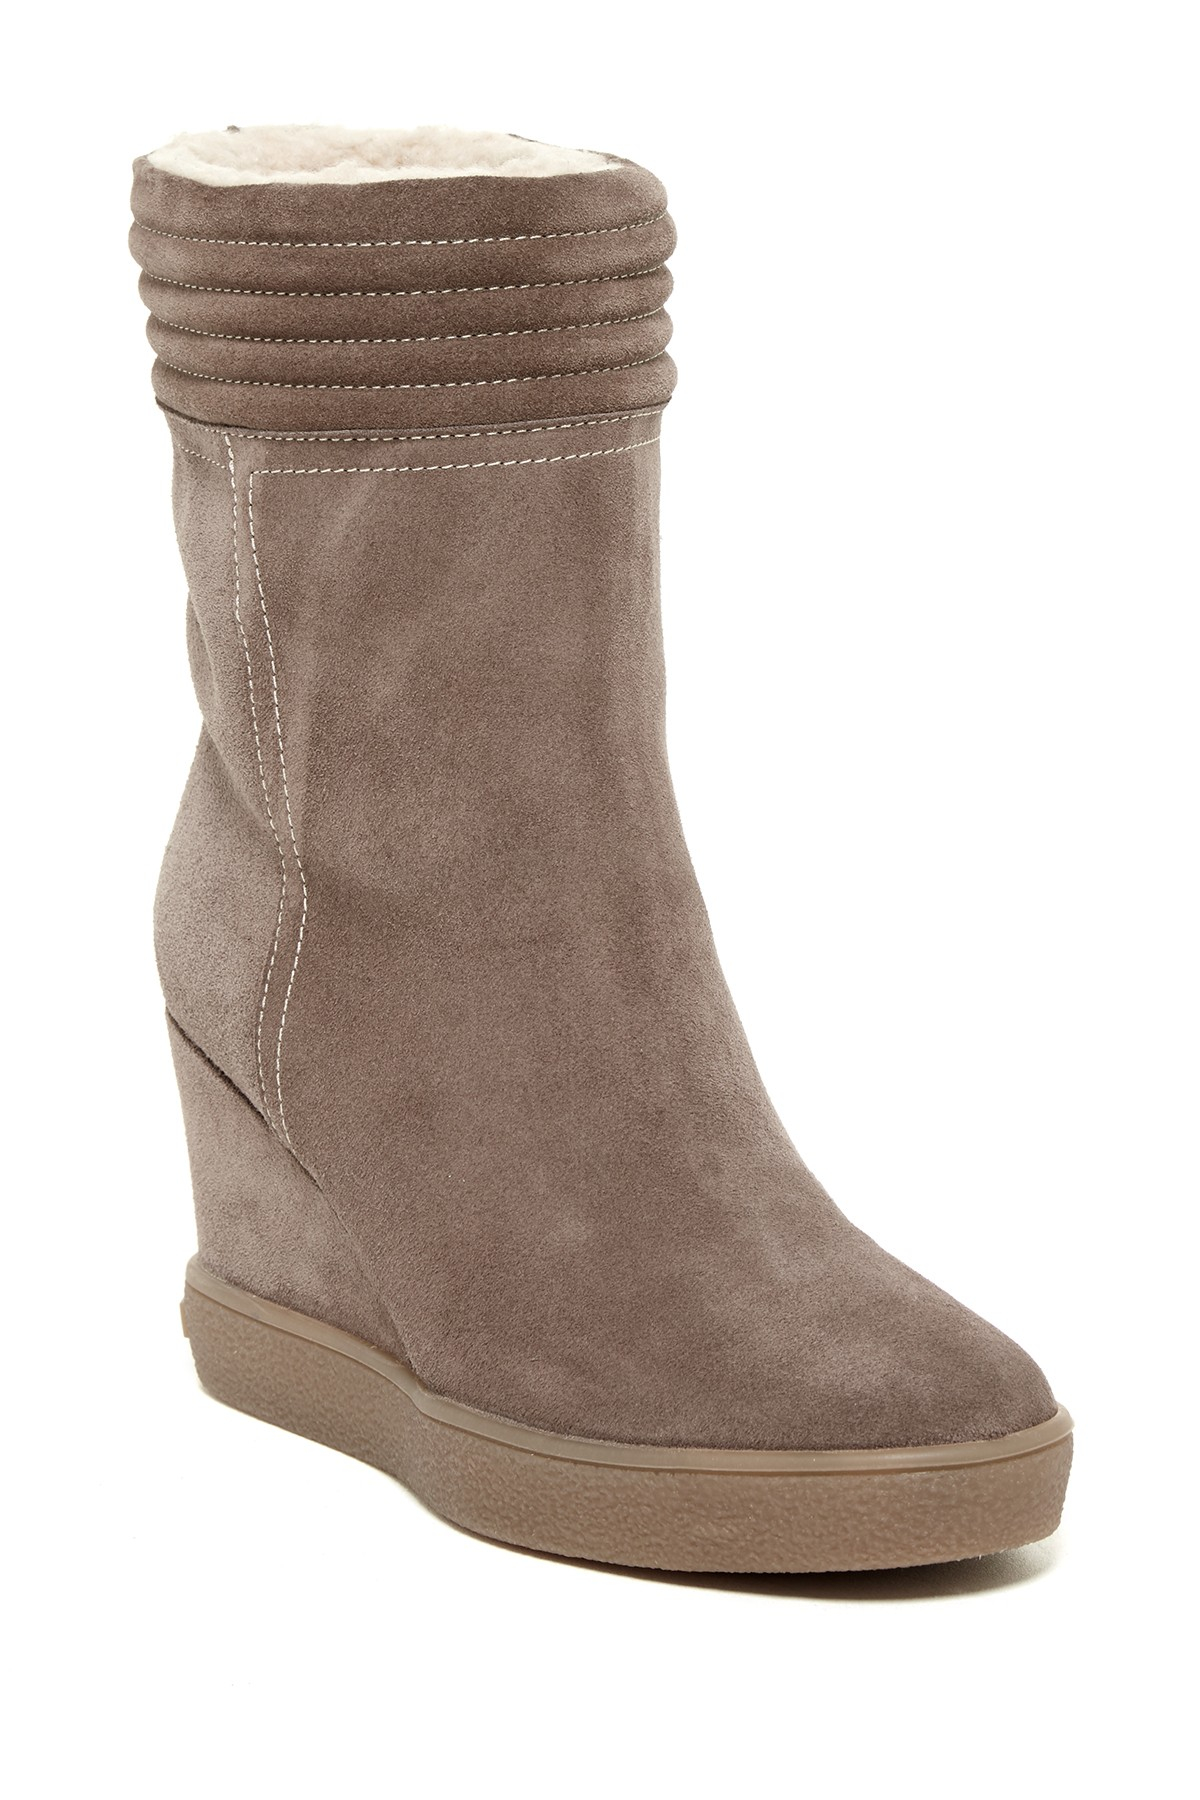 aquatalia caitlin faux fur wedge boot lyst